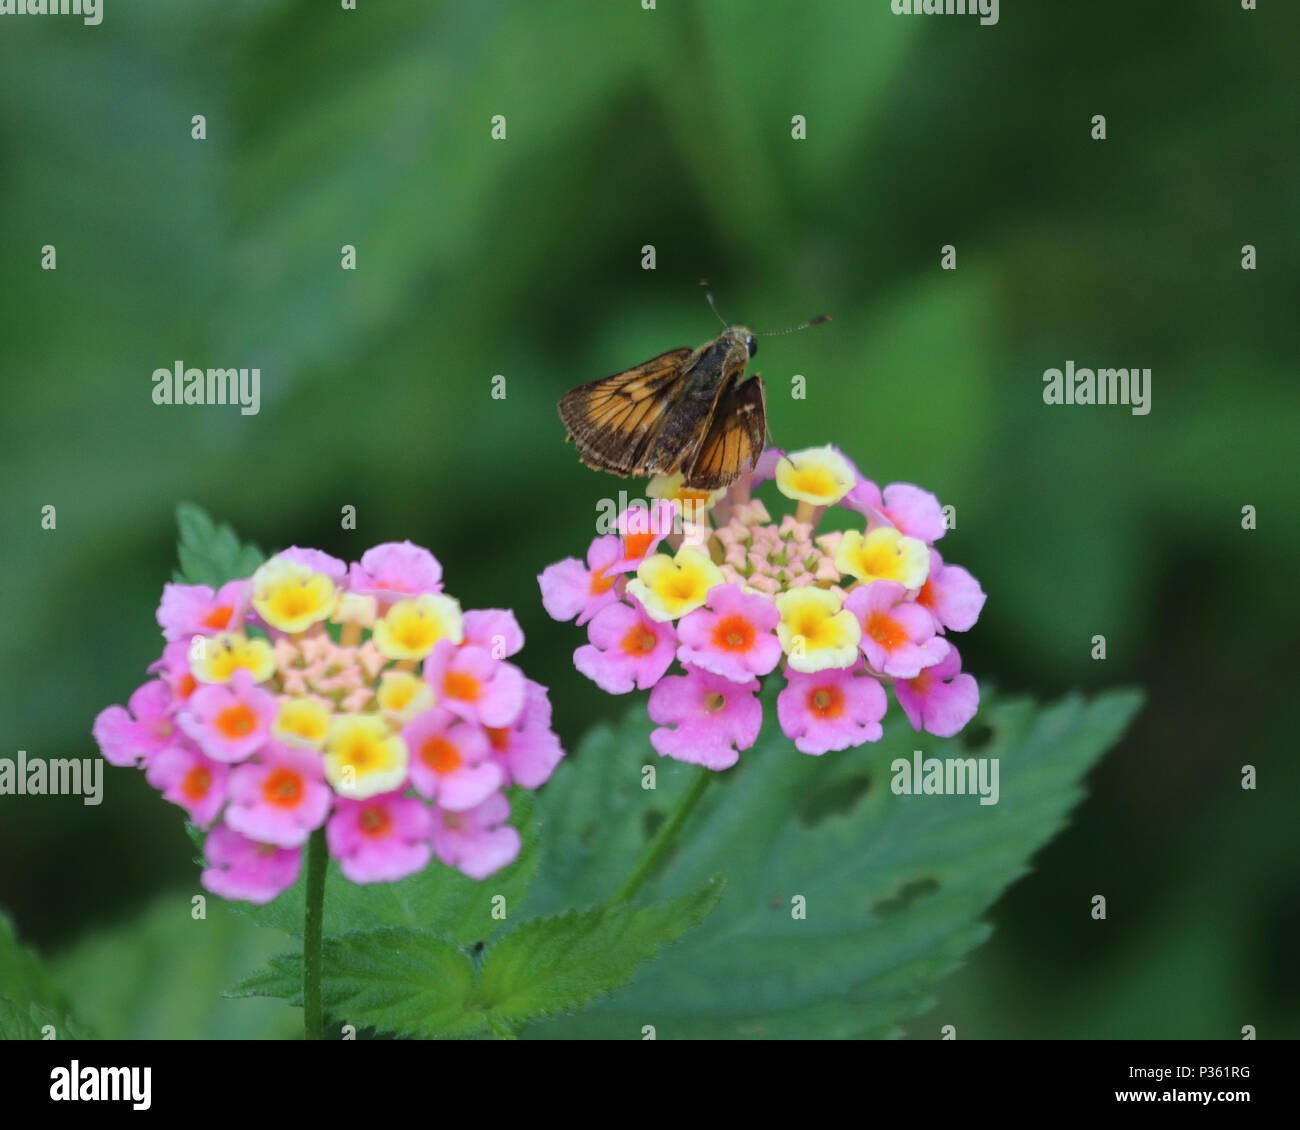 The Lantana flower is a colorful cluster  of star shaped flowers that attracts butterflies and moths - Stock Image